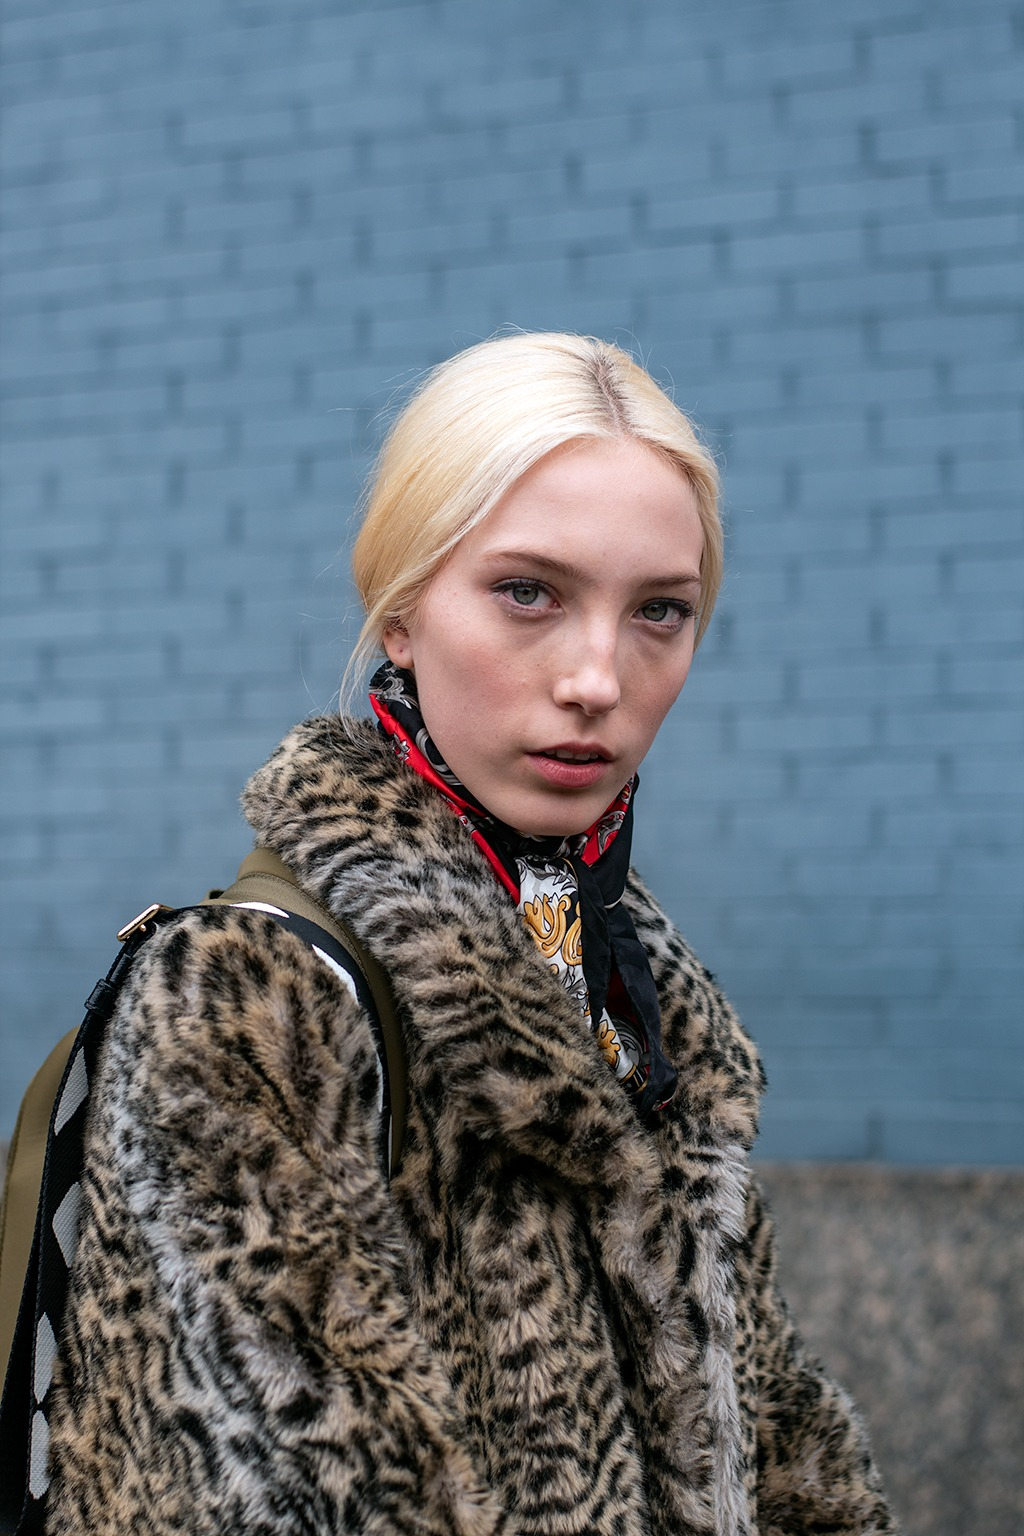 NYFW AW19 Street Style: Shot of a woman with platinum blonde hair with sleek middle part with wispy hair trends, wearing a leopard print jacket with a chain print neckerchief